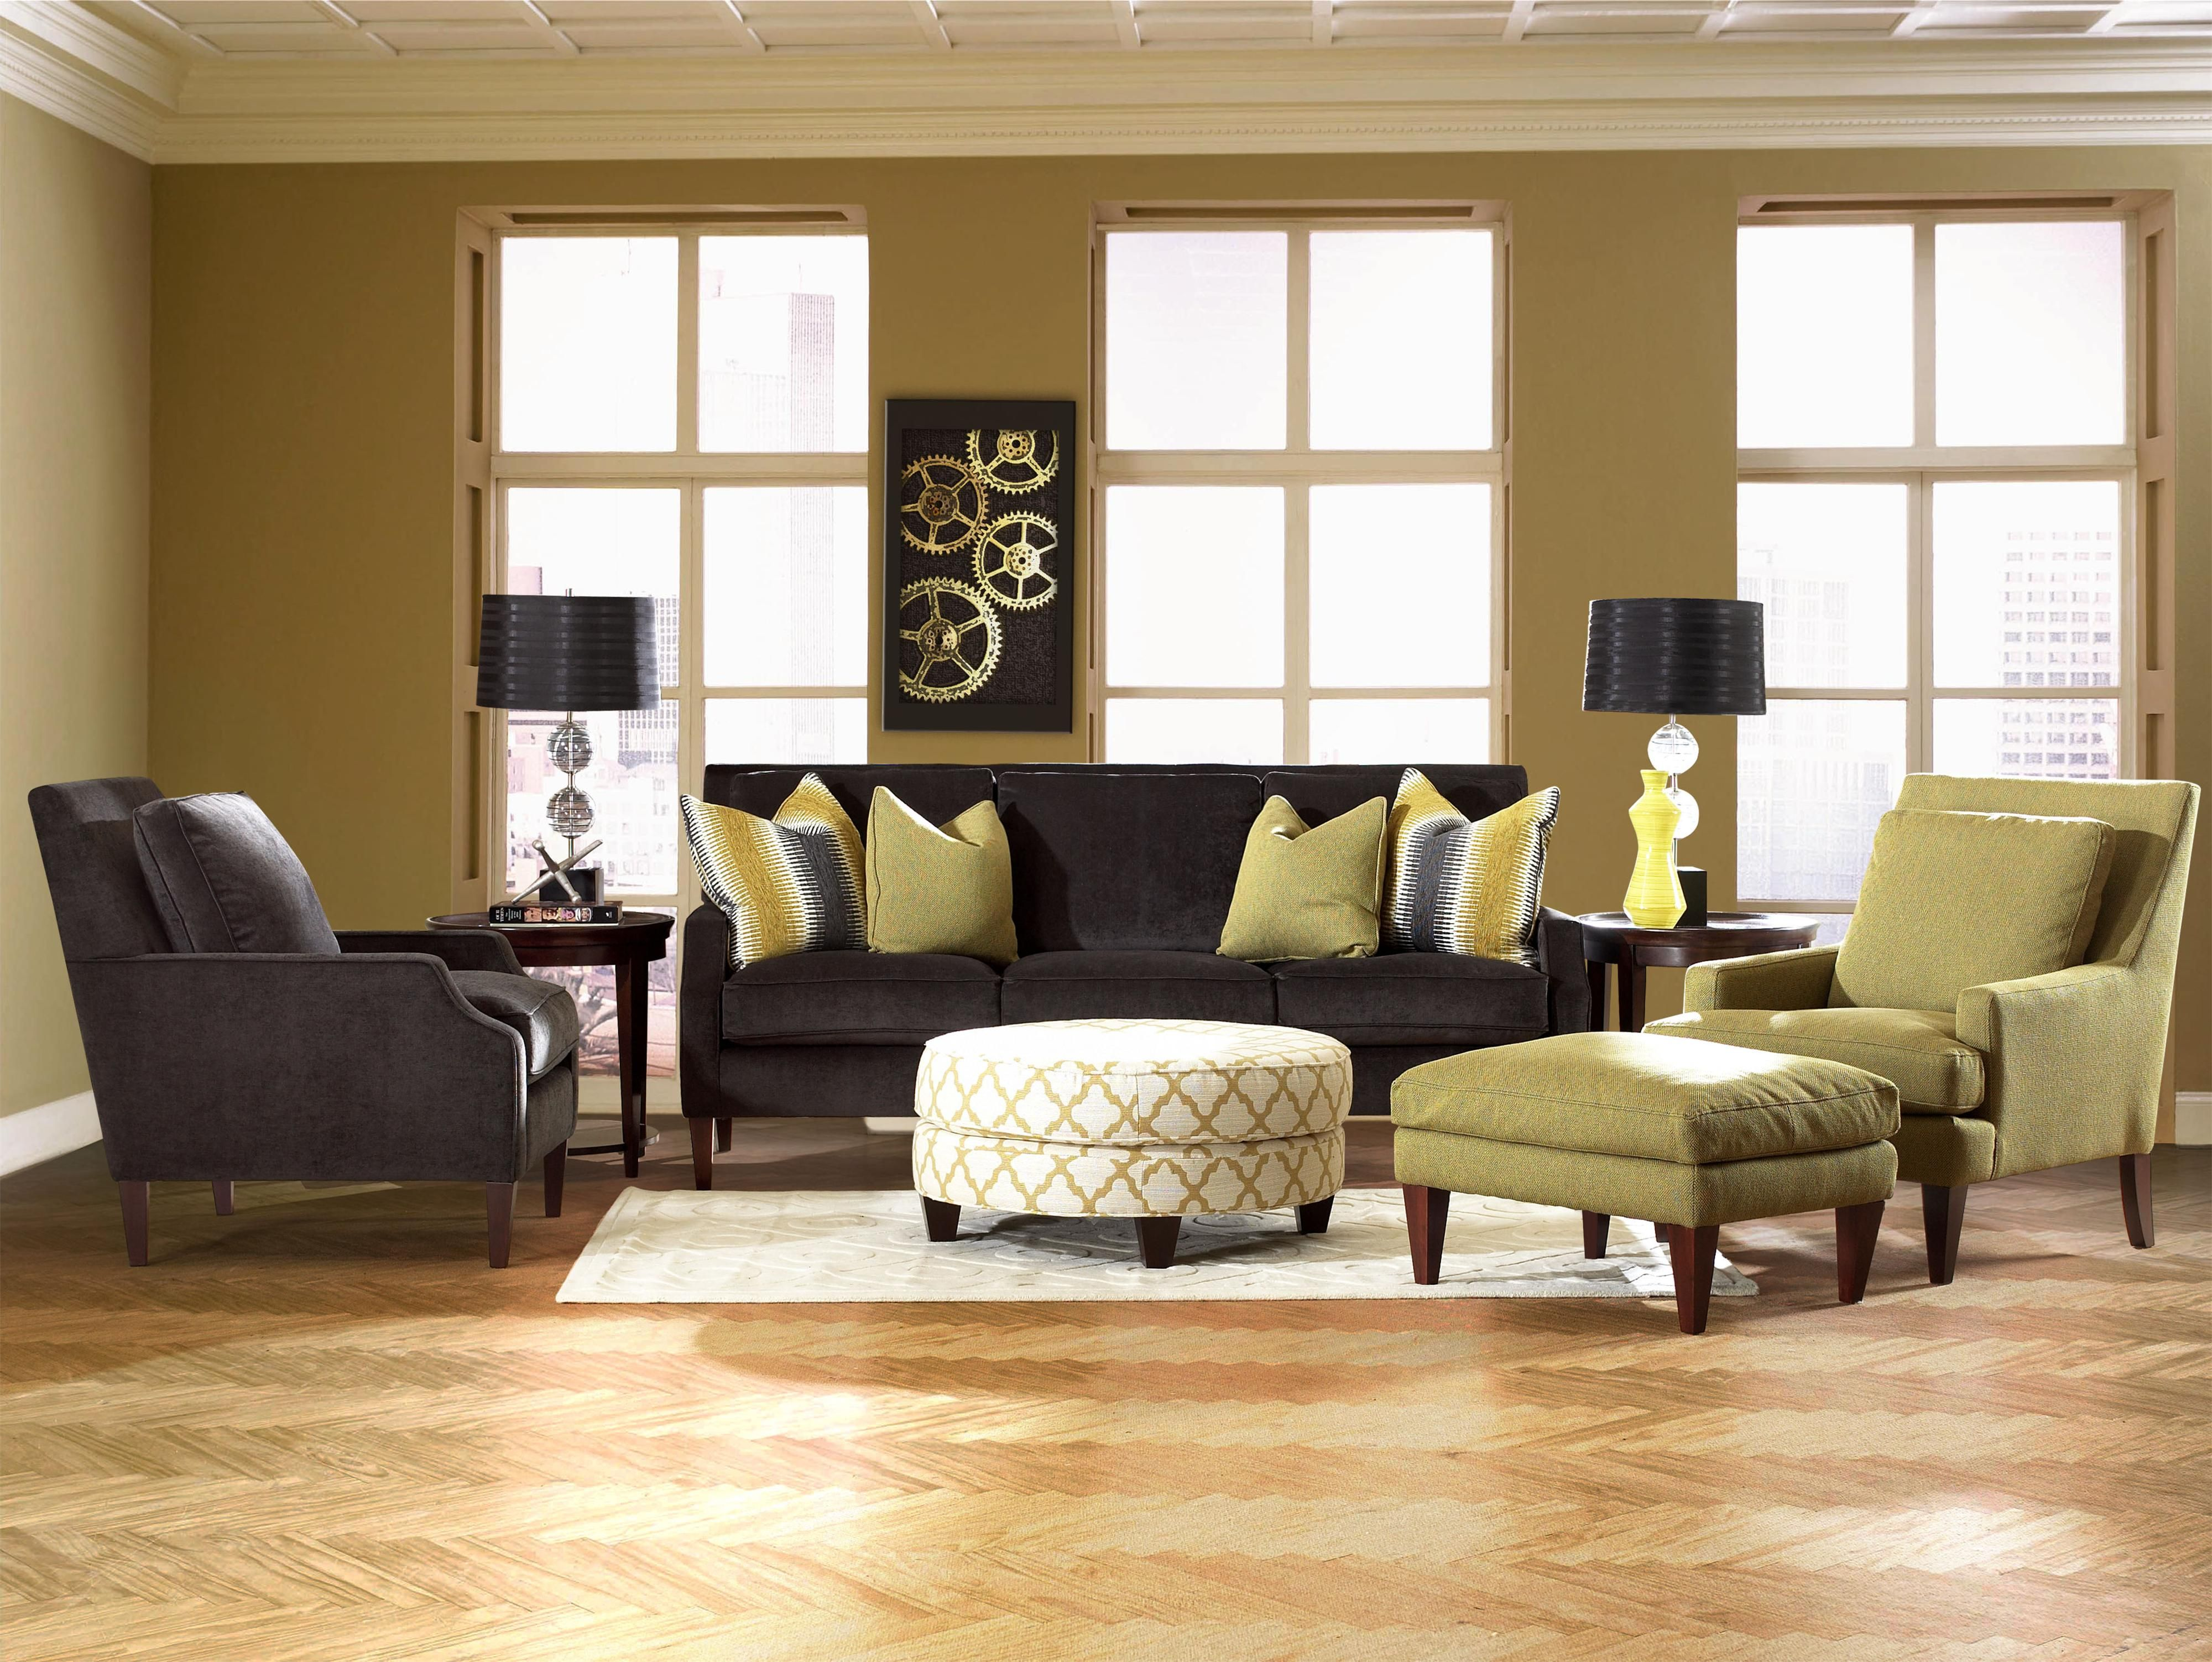 Luxurious Klaussner Becca Collection Living Room Furniture For Sale In Long Island